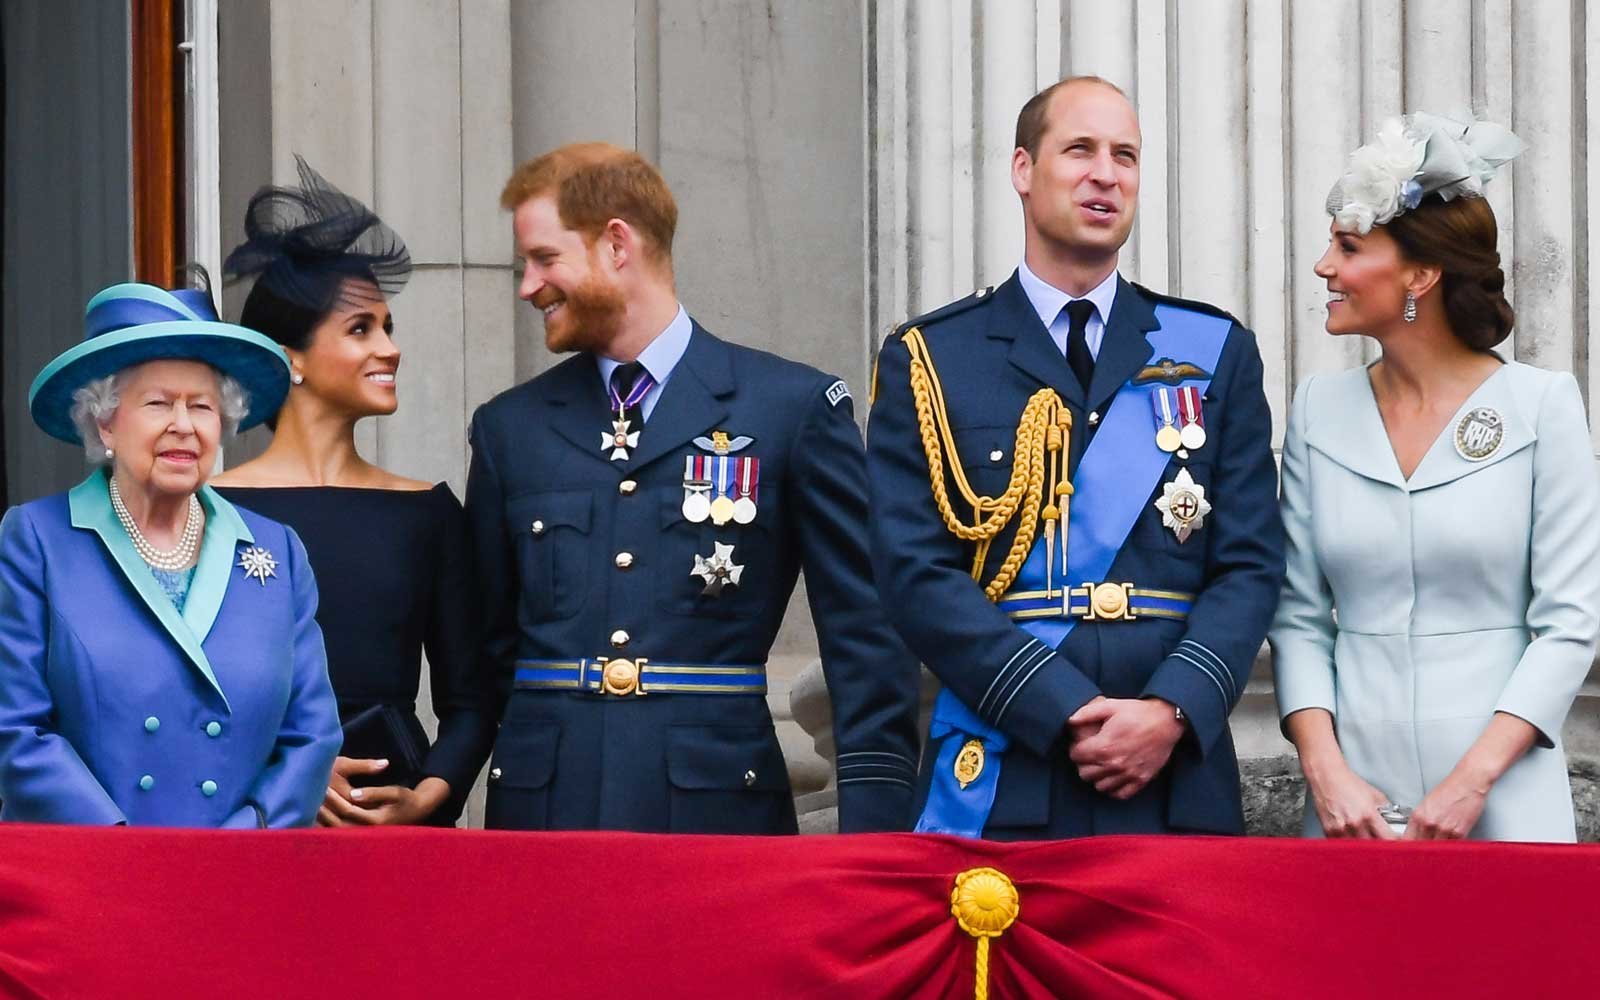 Queen Elizabeth ll, Meghan, Duchess of Sussex, Prince Harry, Duke of Sussex, Prince William, Duke of Cambridge and Catherine, Duchess of Cambridge stand on the balcony of Buckingham Palace to view a flypast to mark the centenary of the Royal Air Force (RA